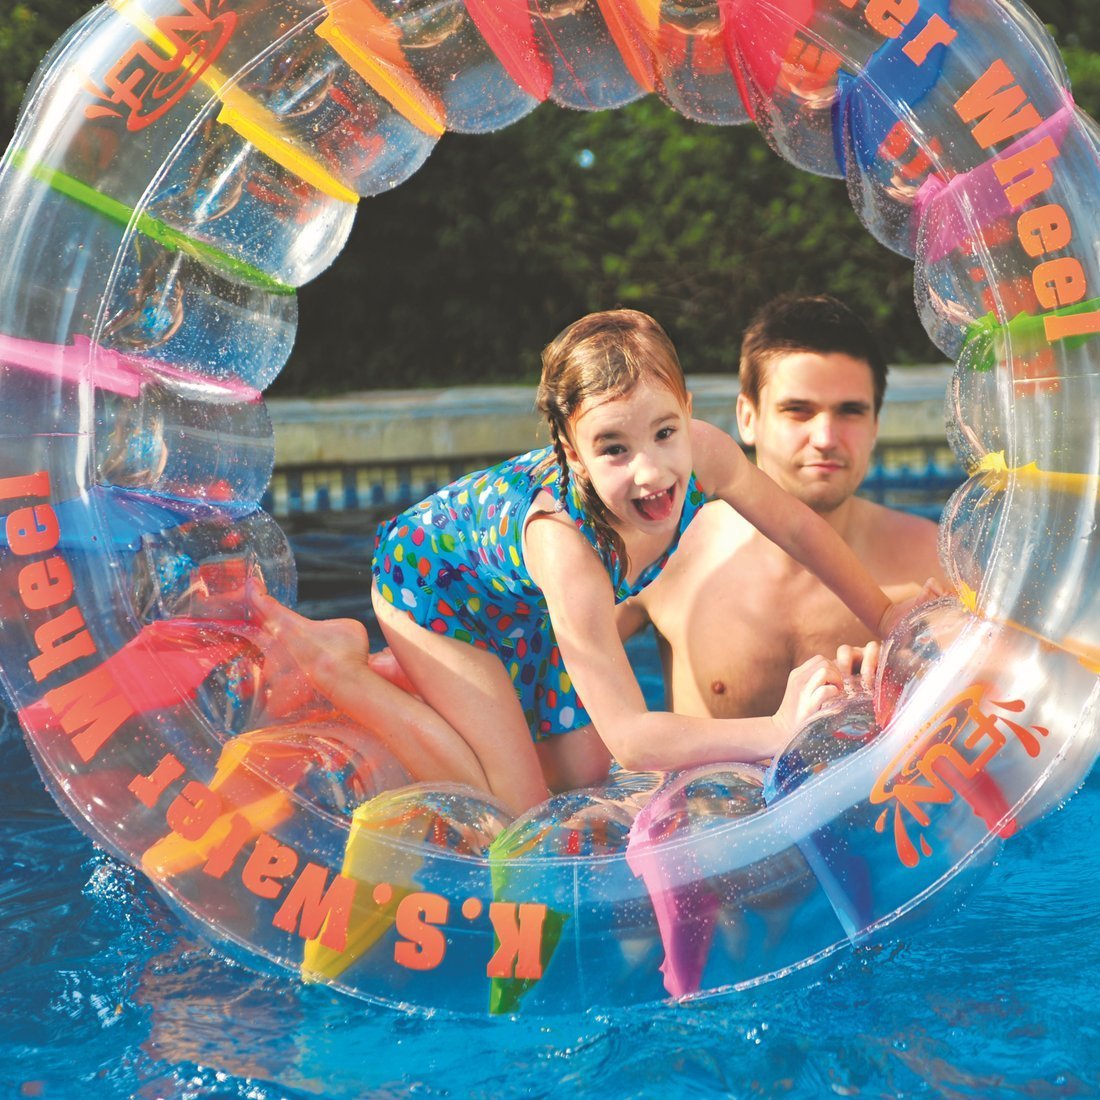 The Inflatable Giant Water Wheel Water Float Toy Relax For Swimming Pool Beach Ebay